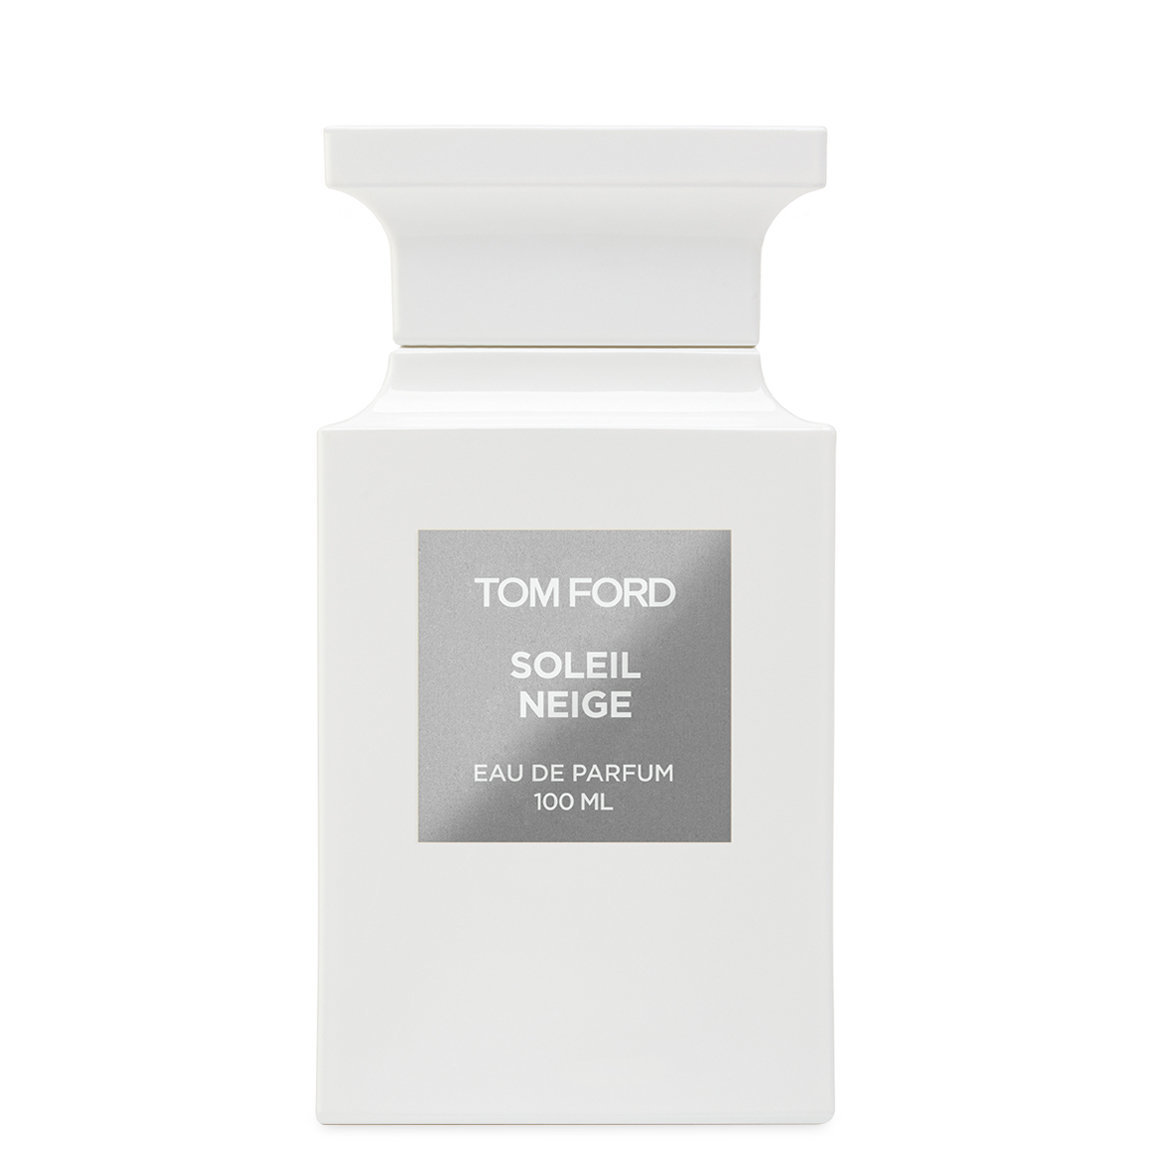 TOM FORD Soleil Neige 100 ml alternative view 1 - product swatch.